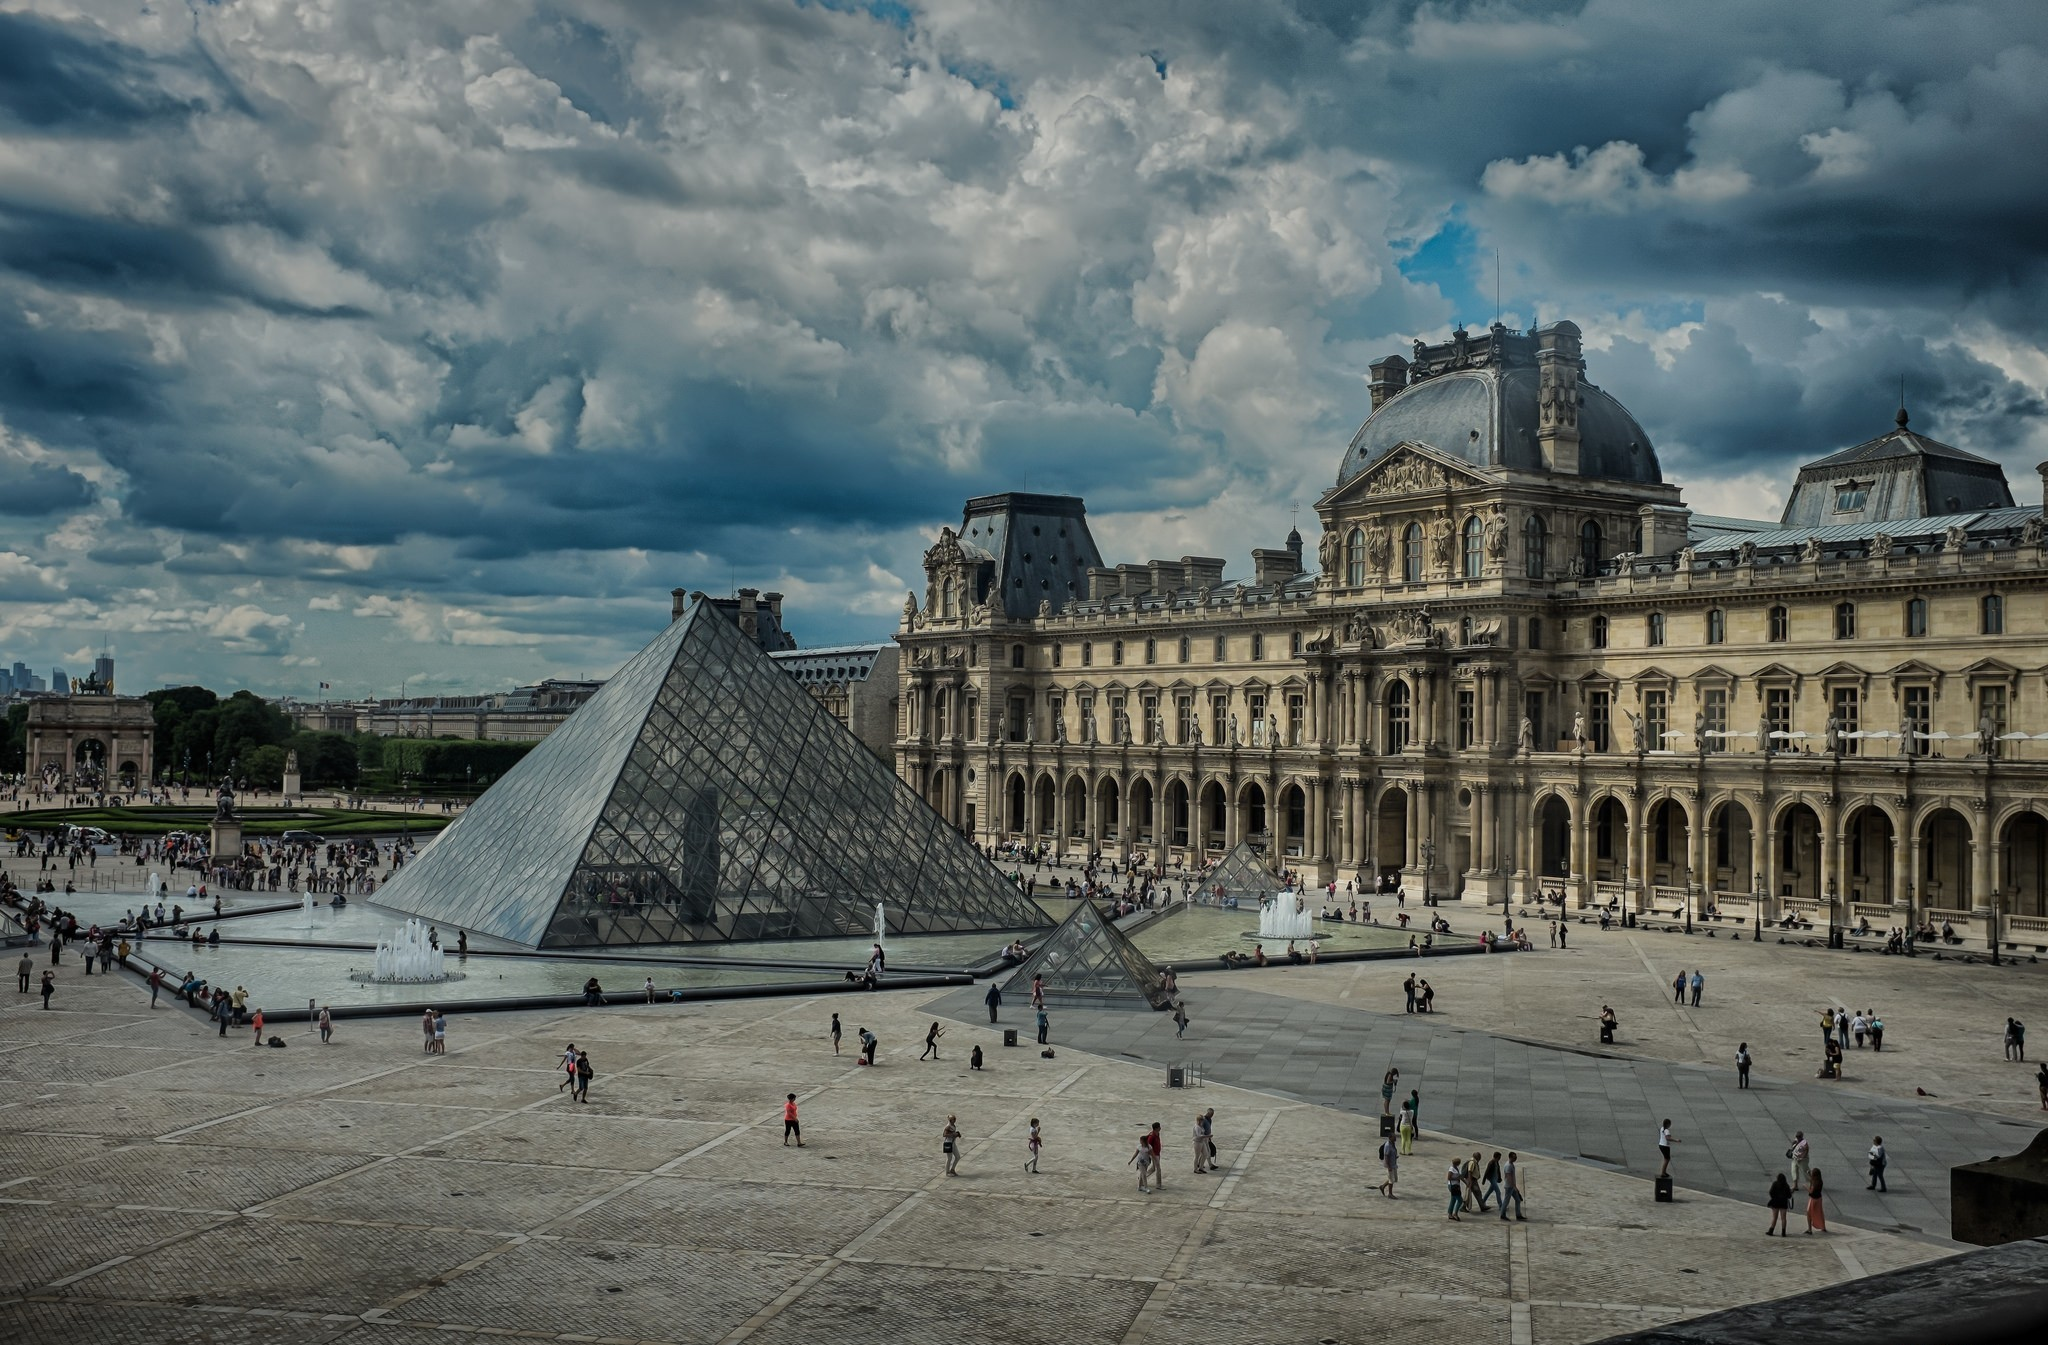 Best 46 Louvre Wallpaper on HipWallpaper Louvre Wallpaper 2048x1345